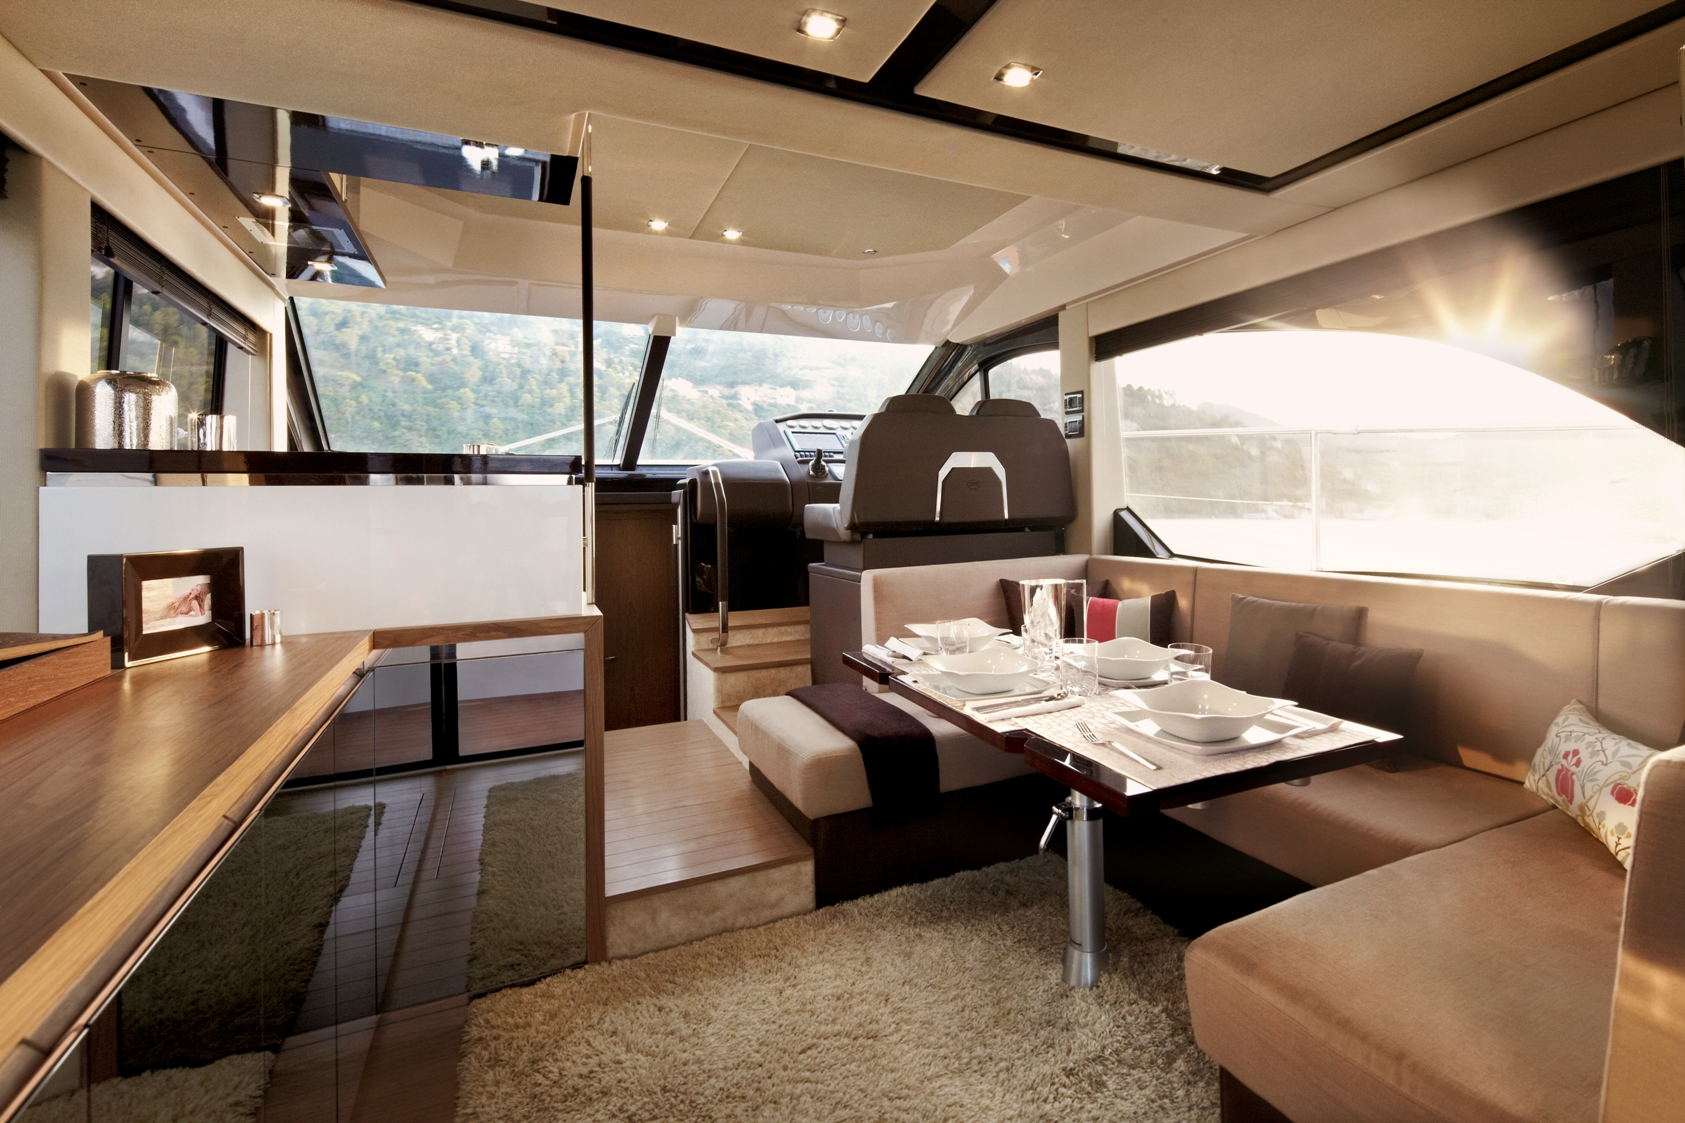 Sexy SESSA FLY 45: Chic, Sporty and Agile | Boatbloggings.com - Yacht ...